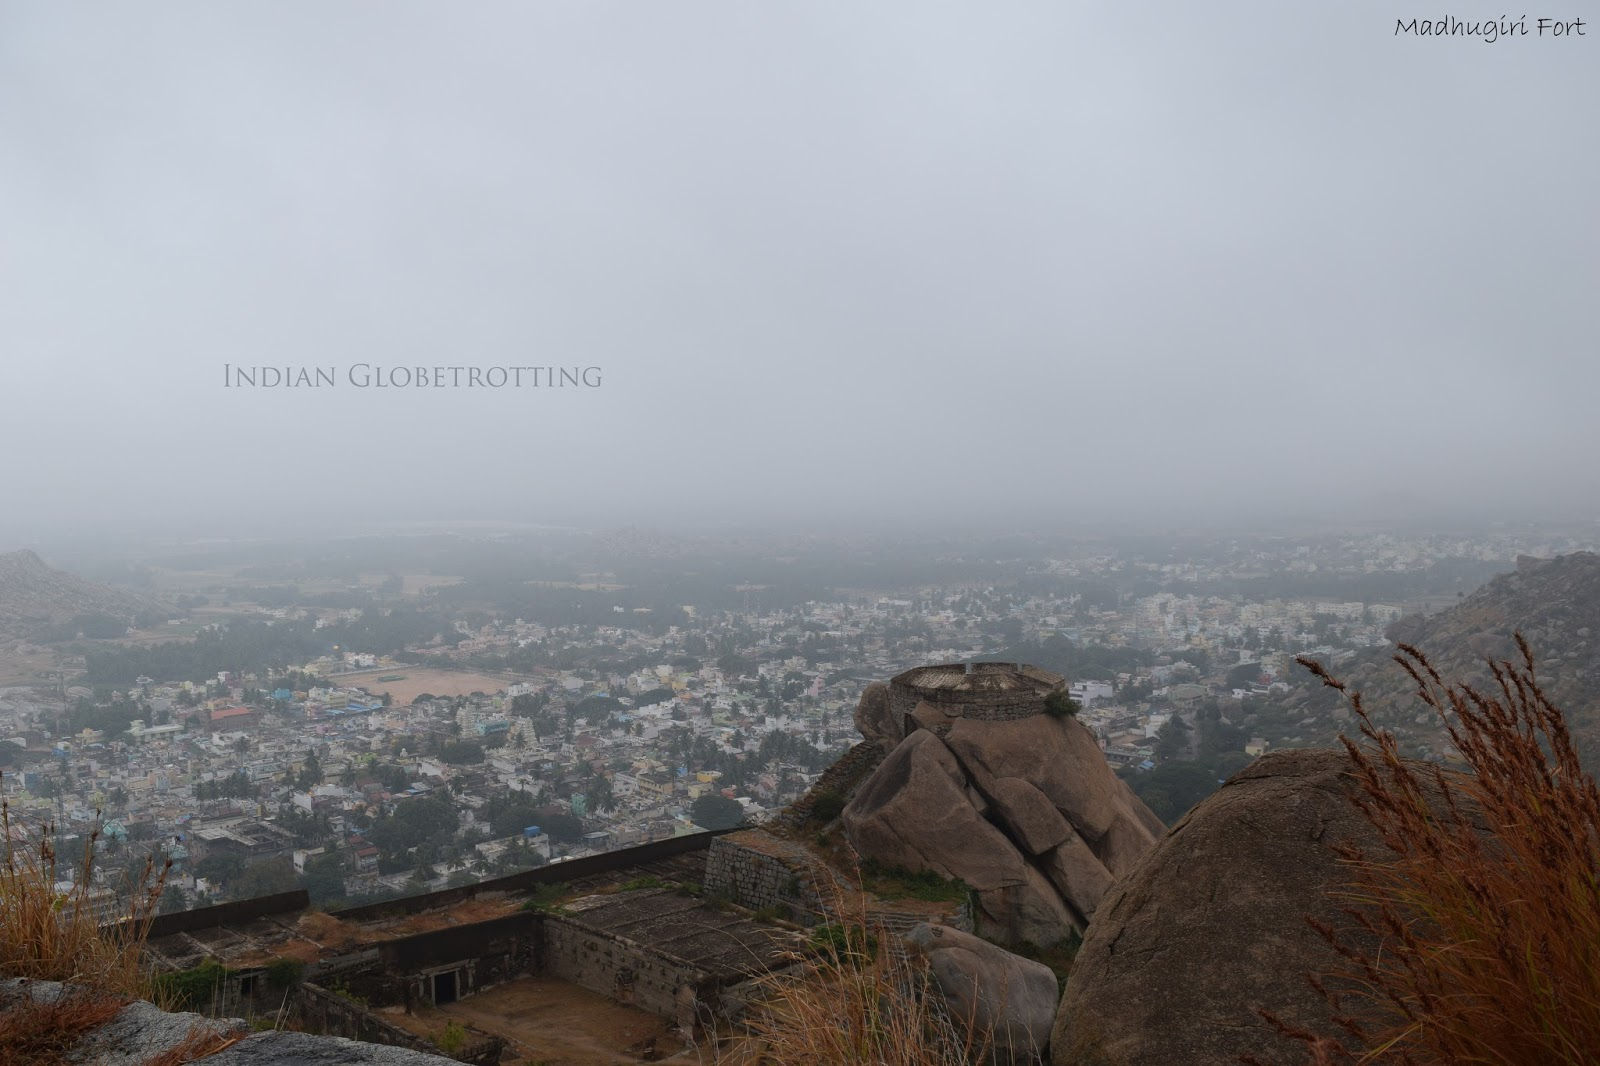 a view from Madhugiri Fort during the initial part of the trekking